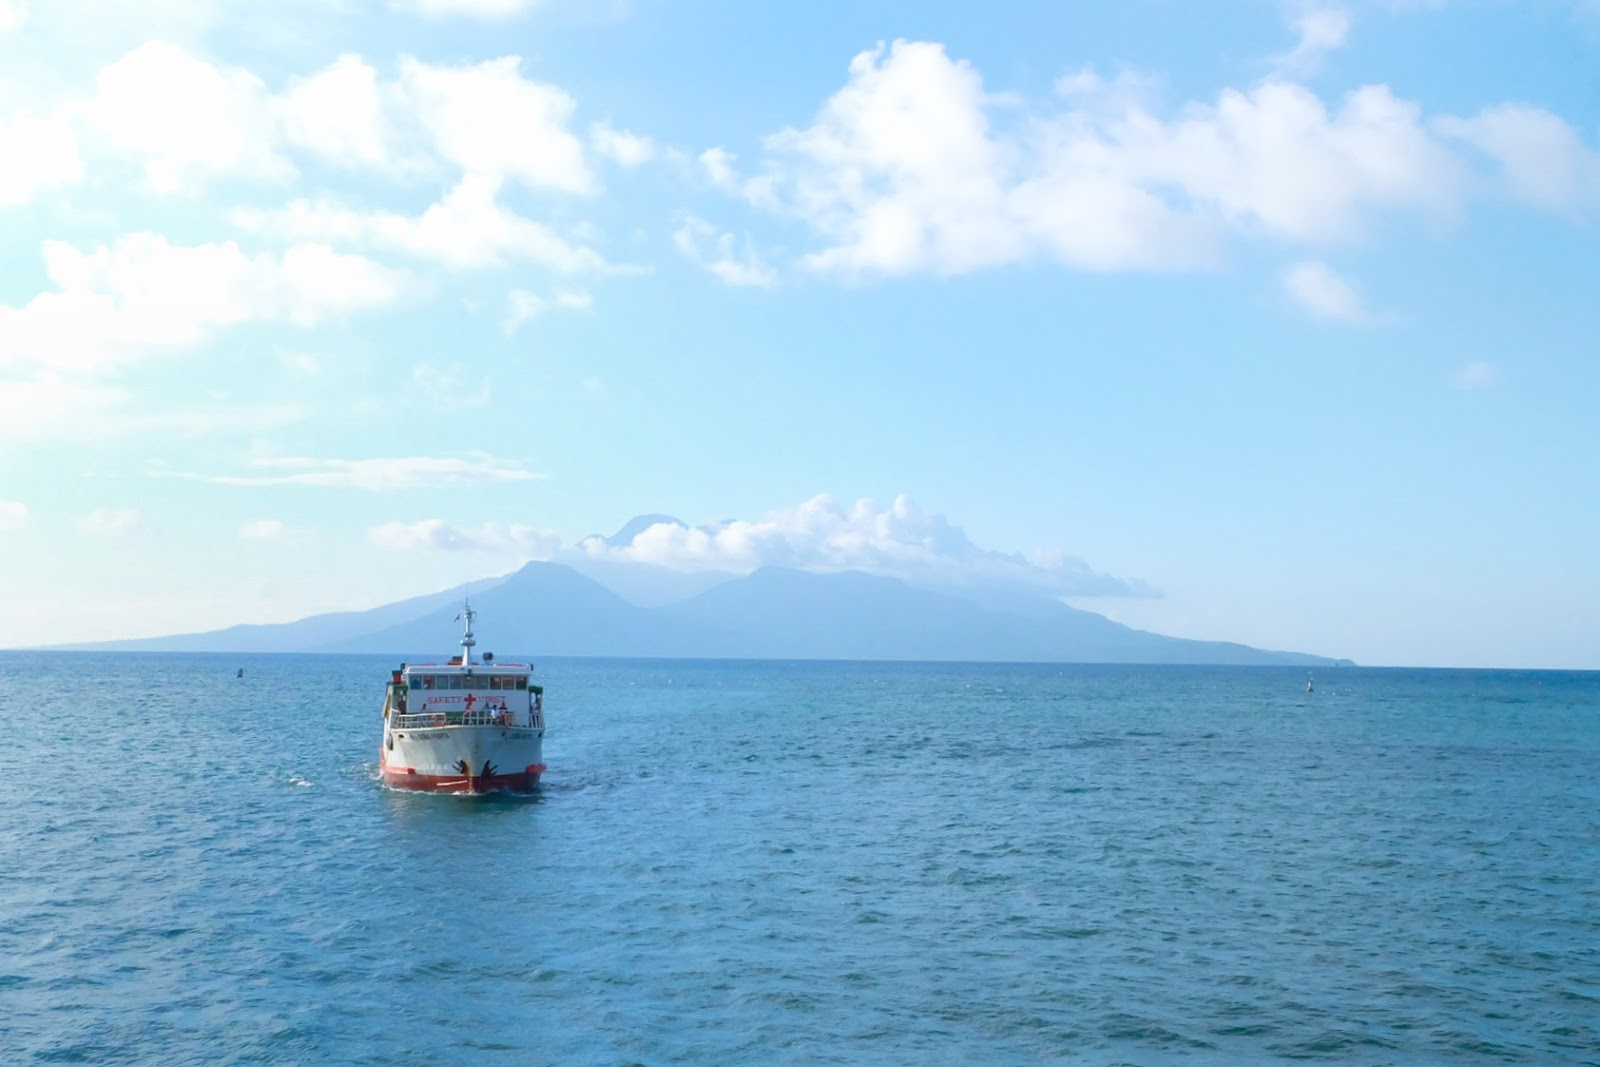 How to get to Camiguin Island